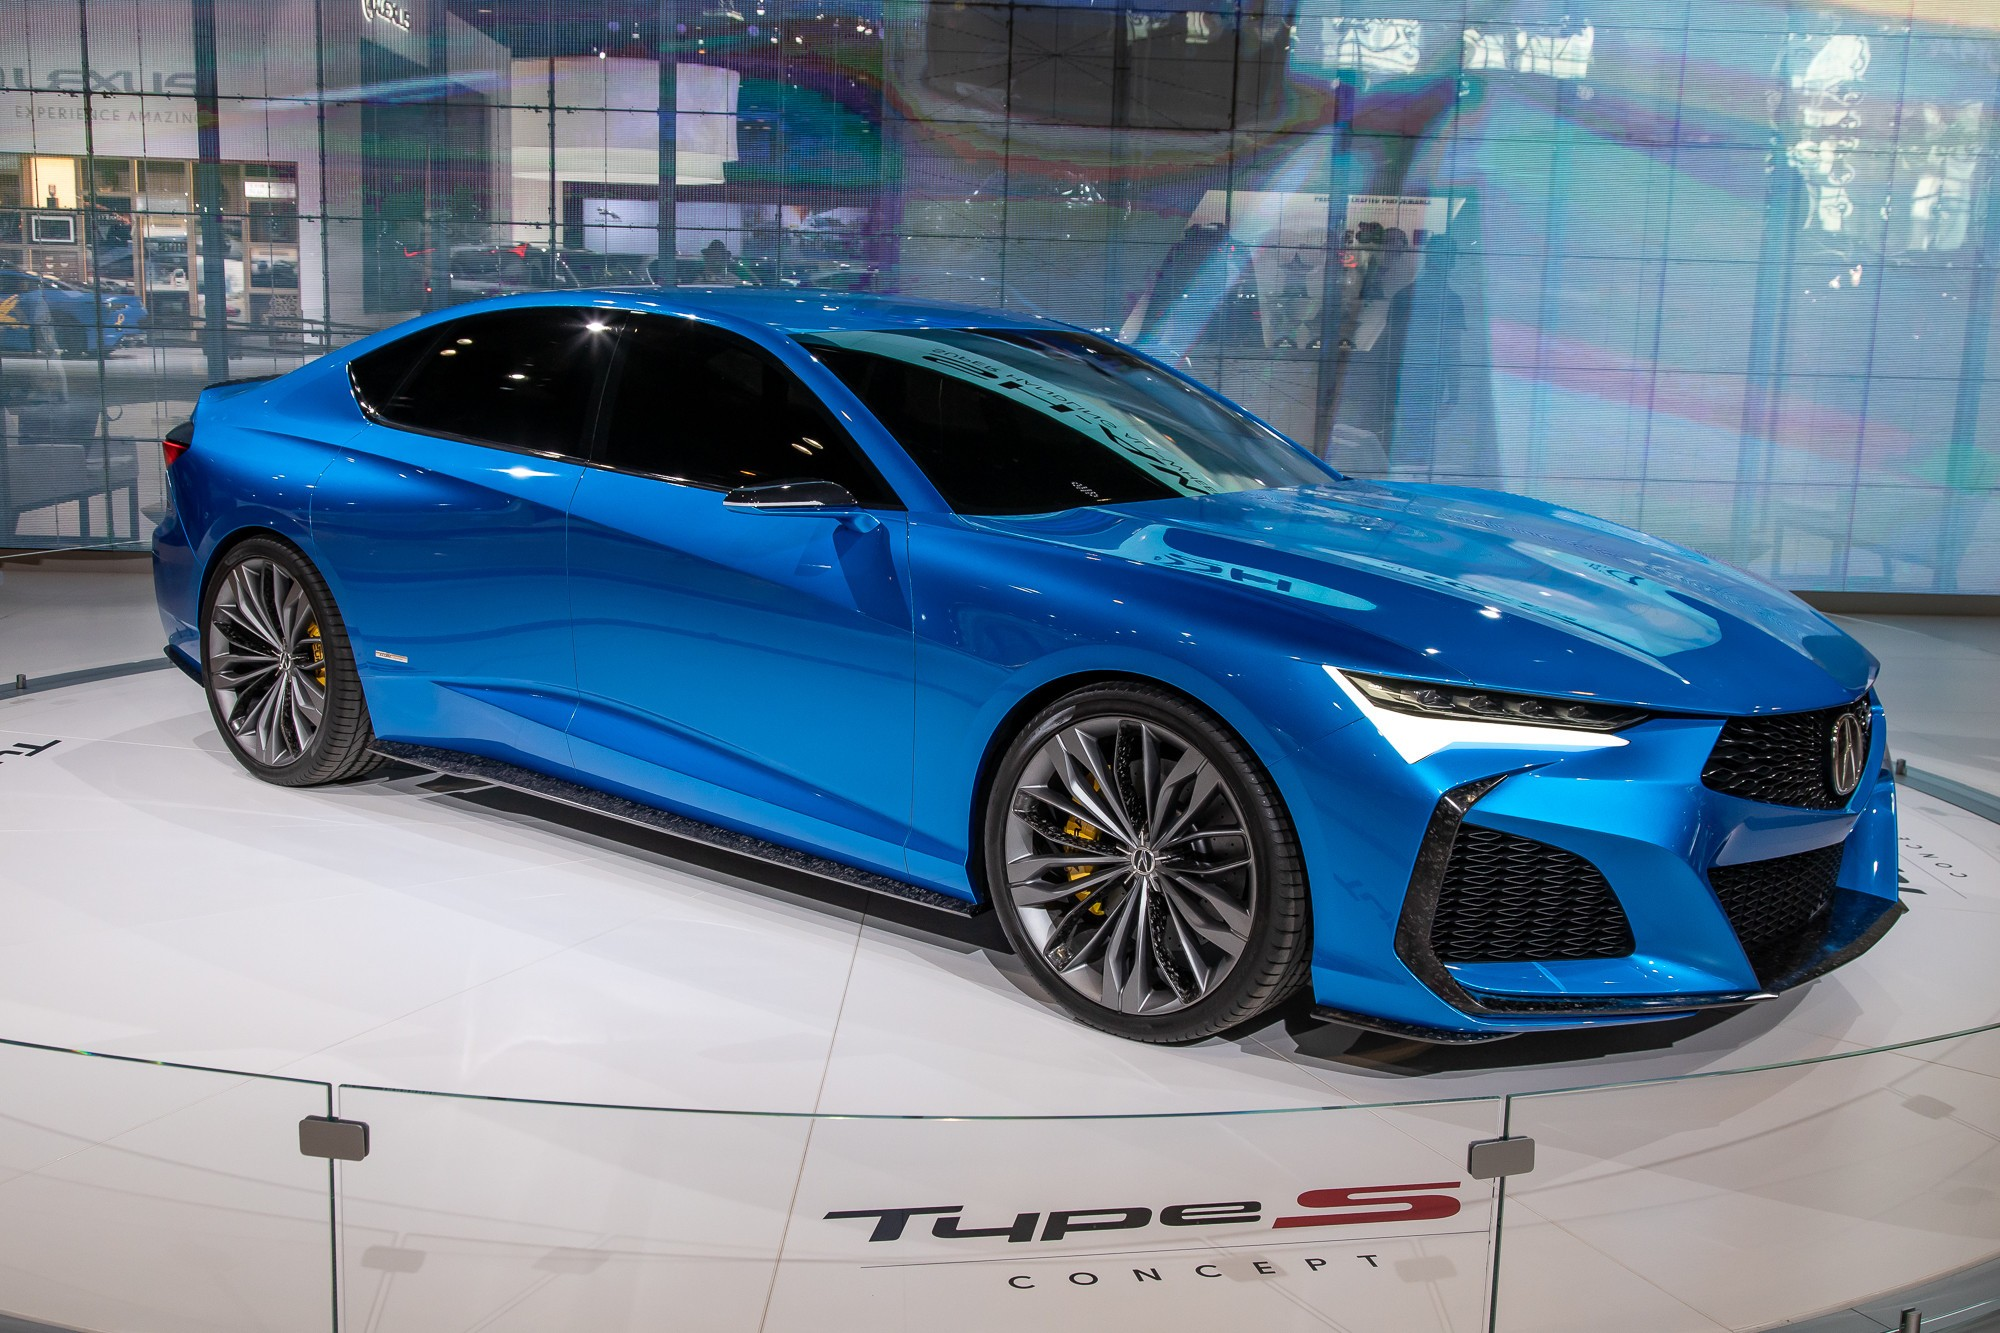 acura-type-s-Concept--1-angle--blue--exterior--front.jpg